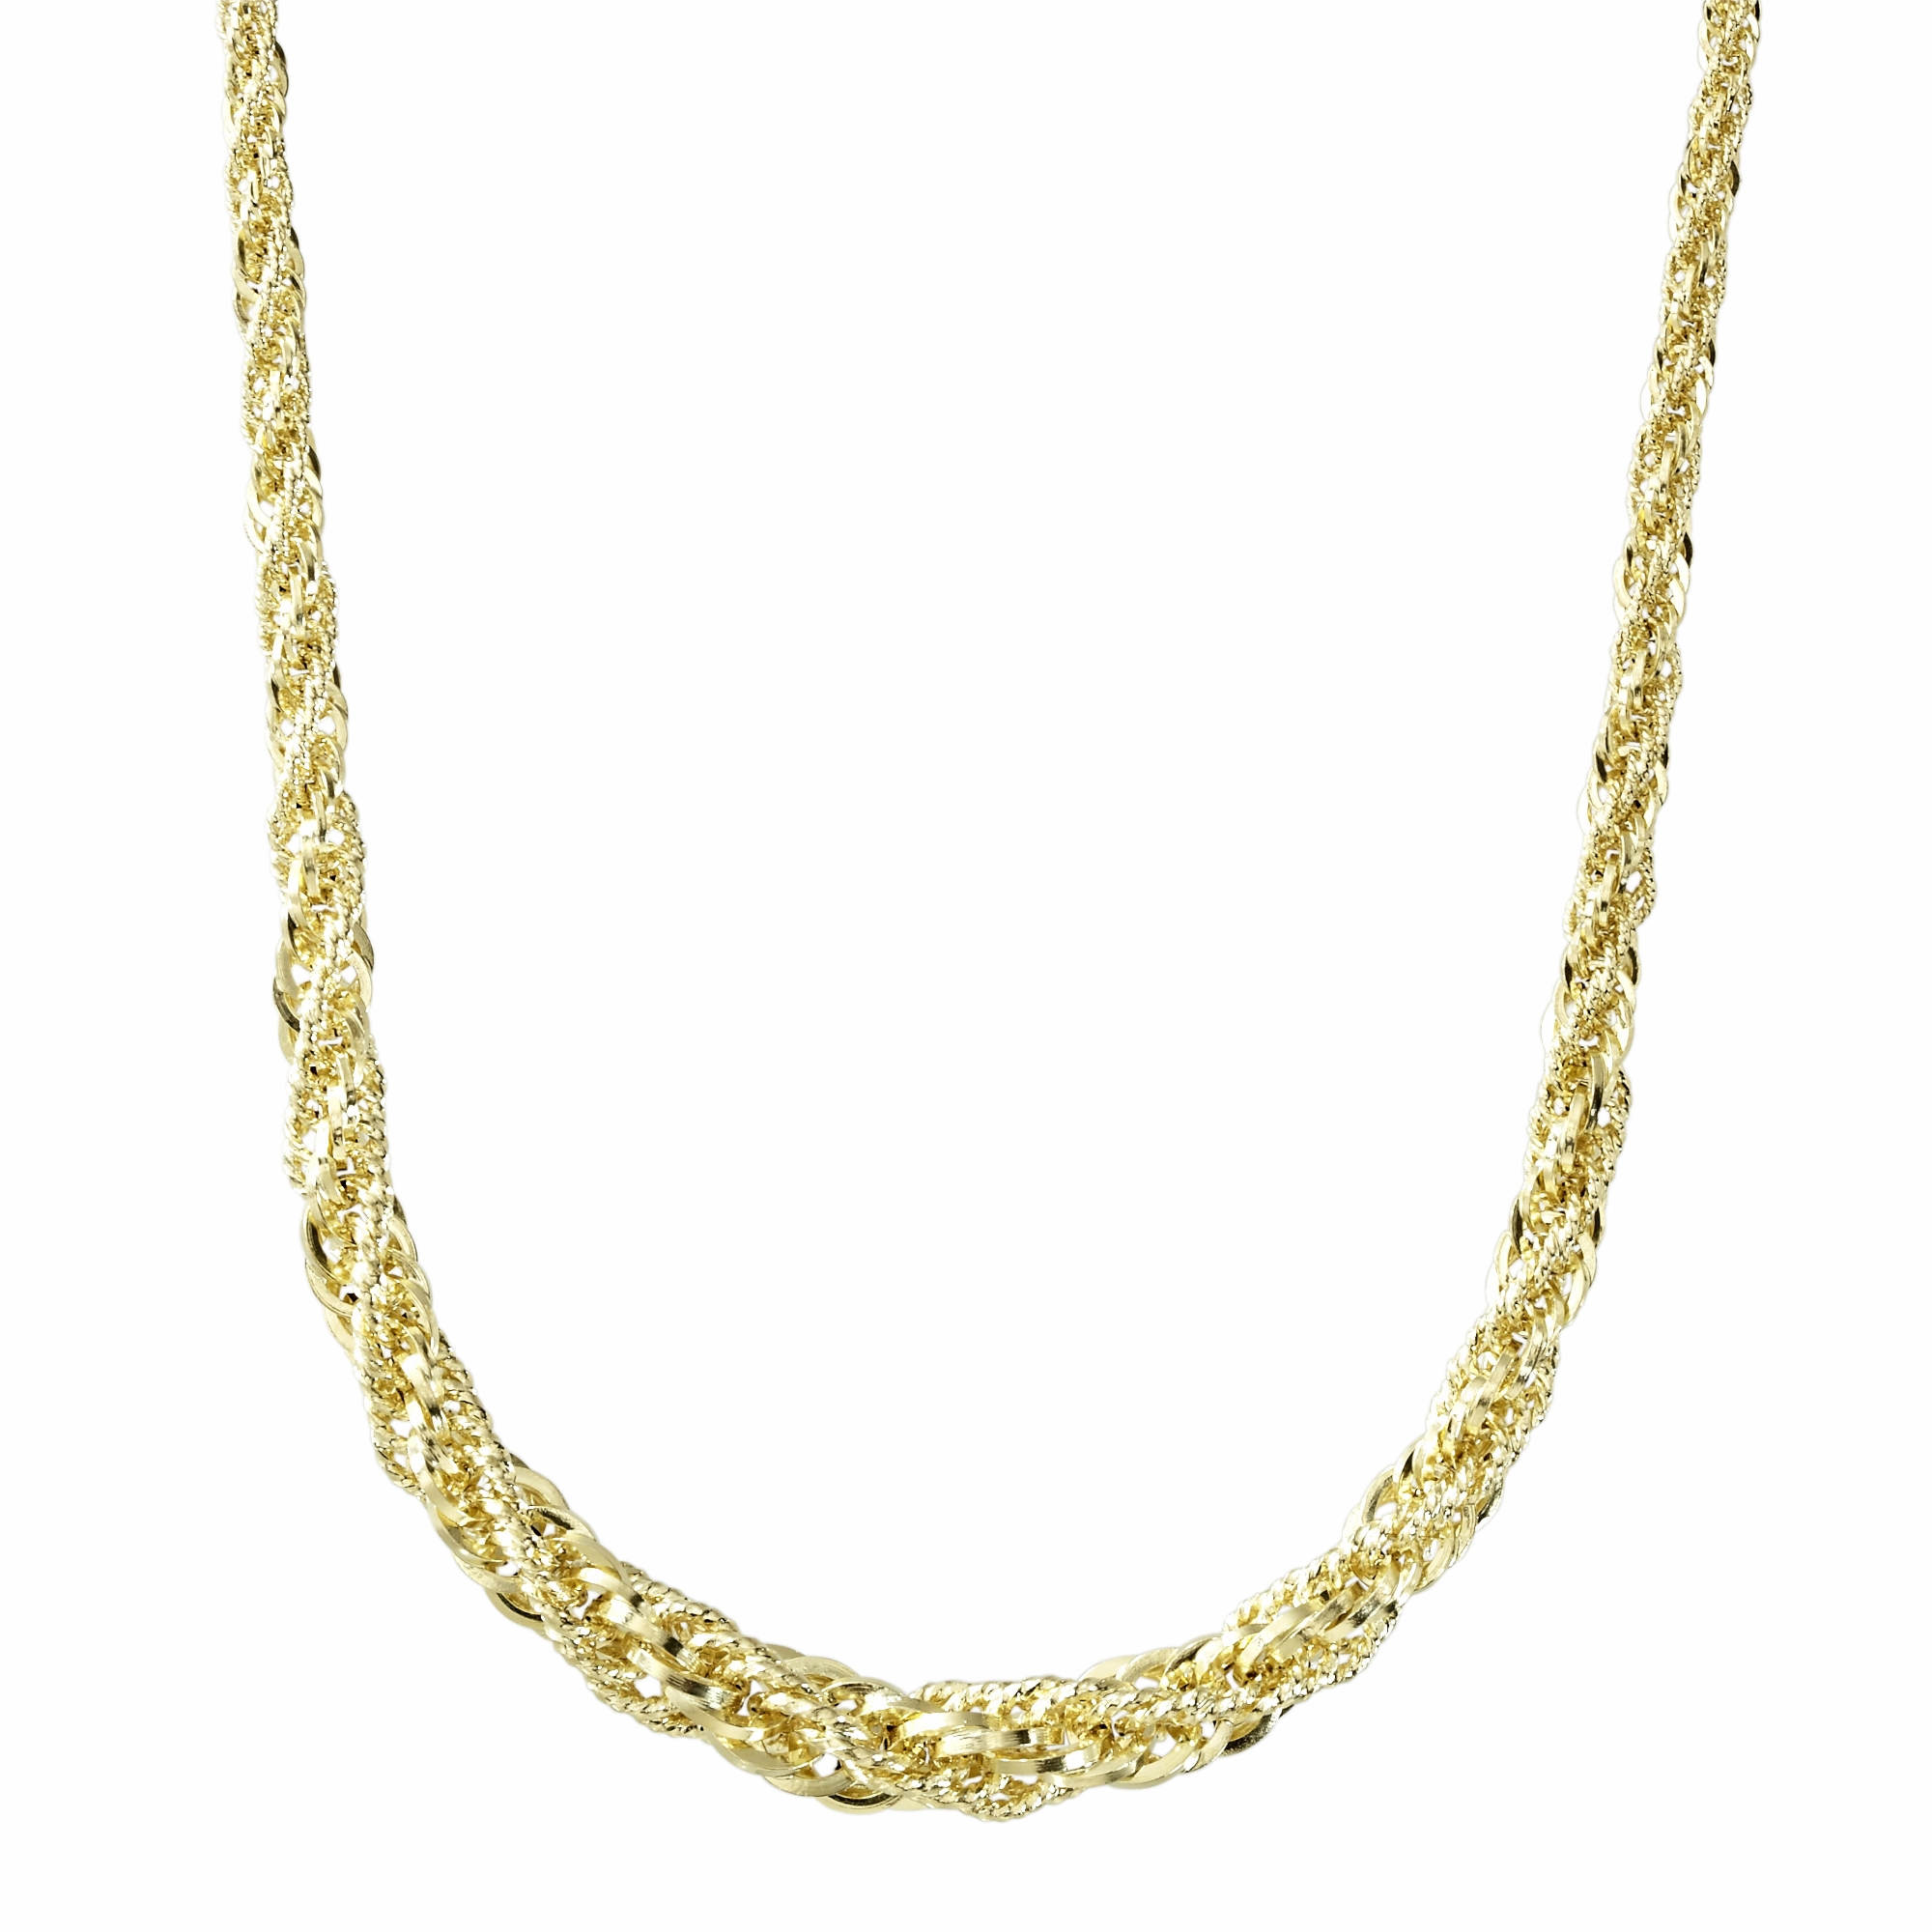 14K Yellow Gold Chain Wrapped Rope Necklace